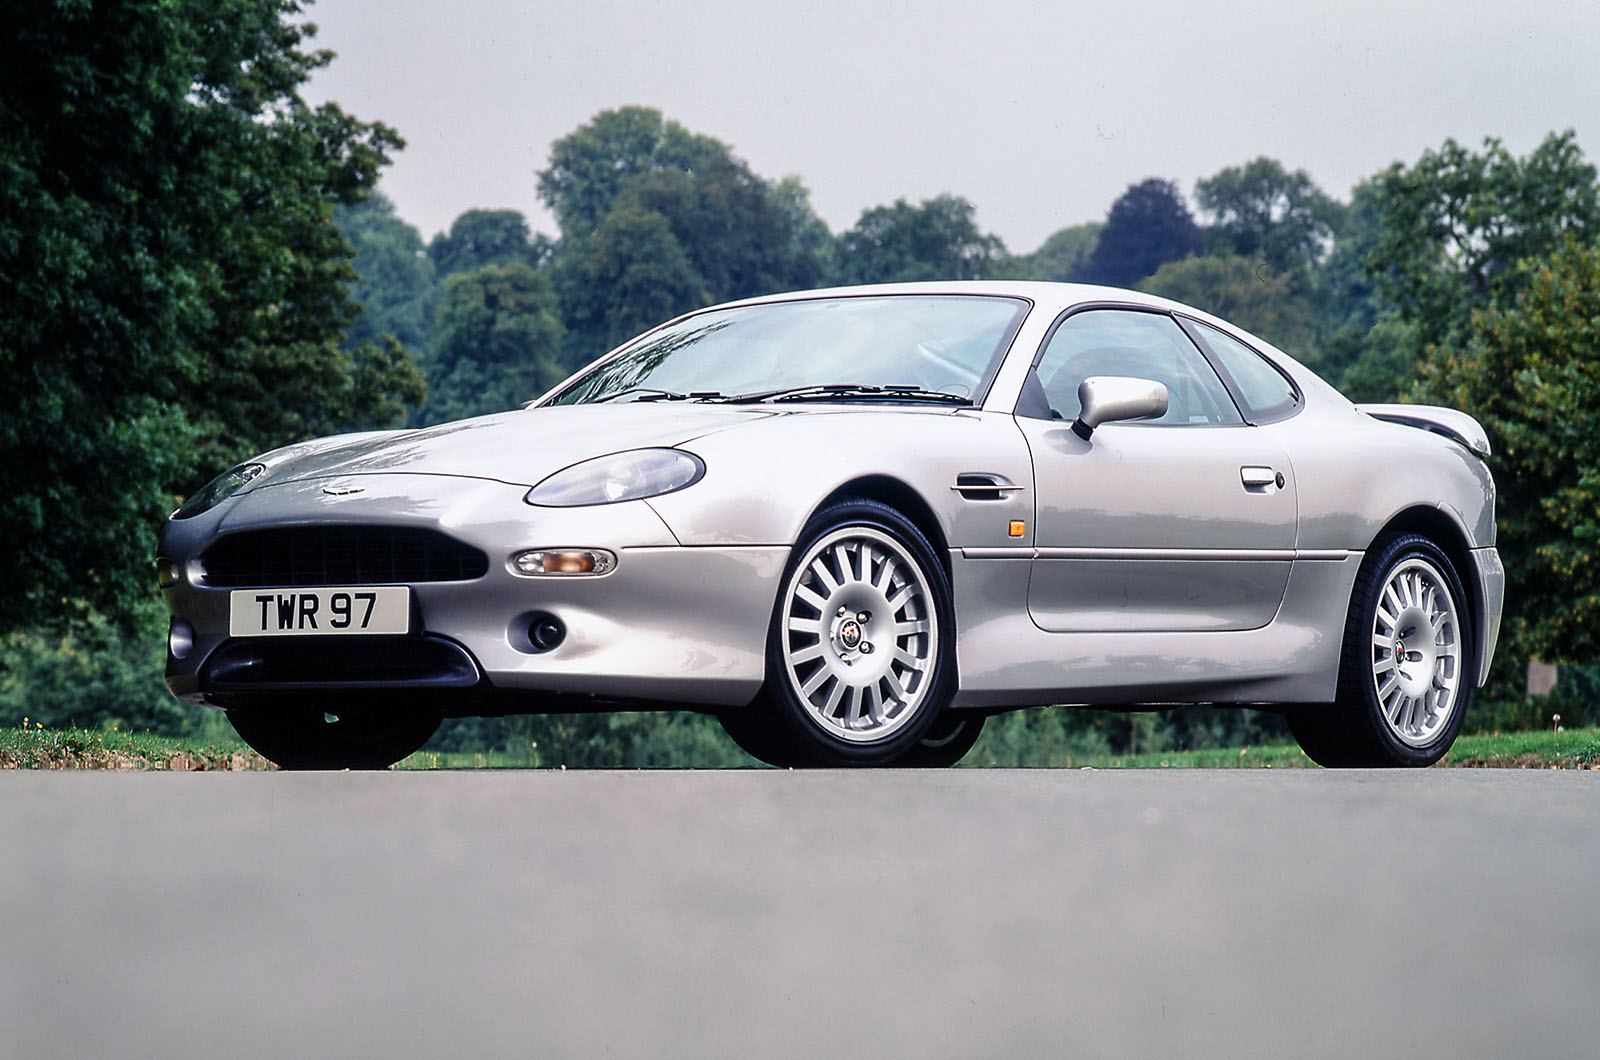 Walkinshaw S One Off Db7 V12 25 September 1996 Throwback Thursday Autocar